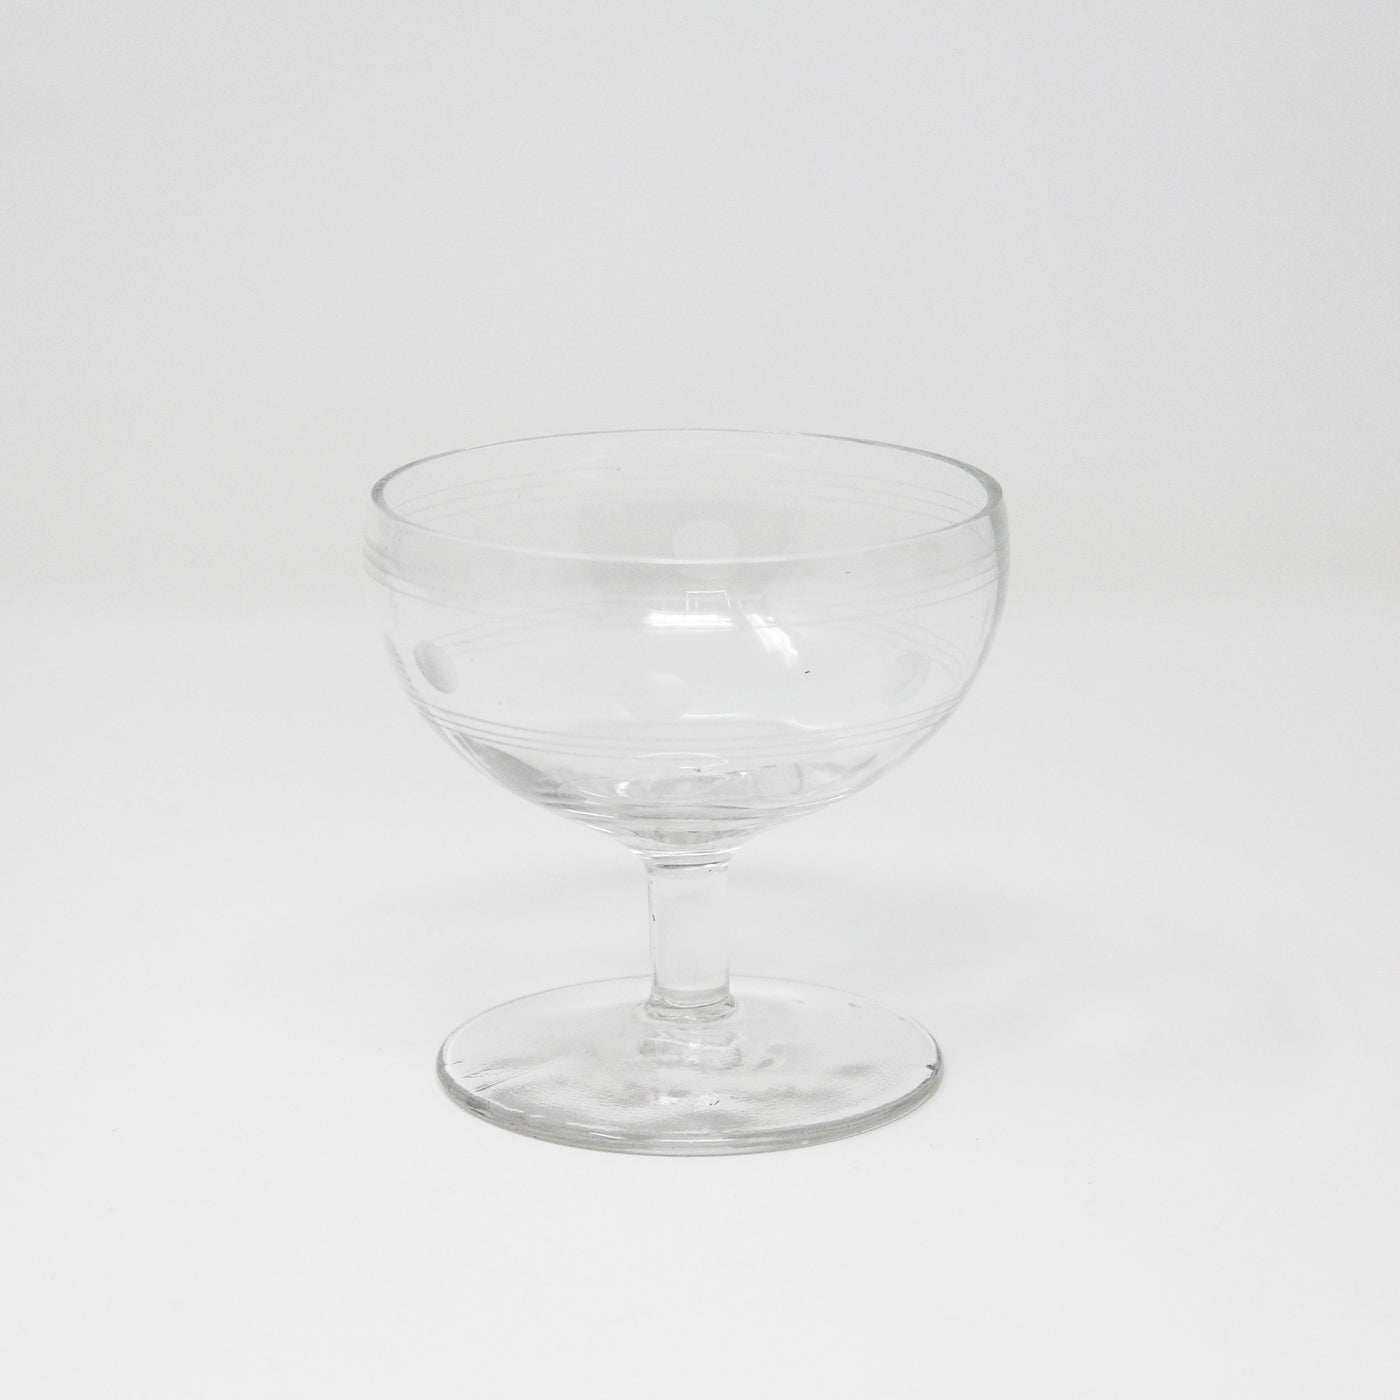 Vintage Polka Dot Coupe Glasses